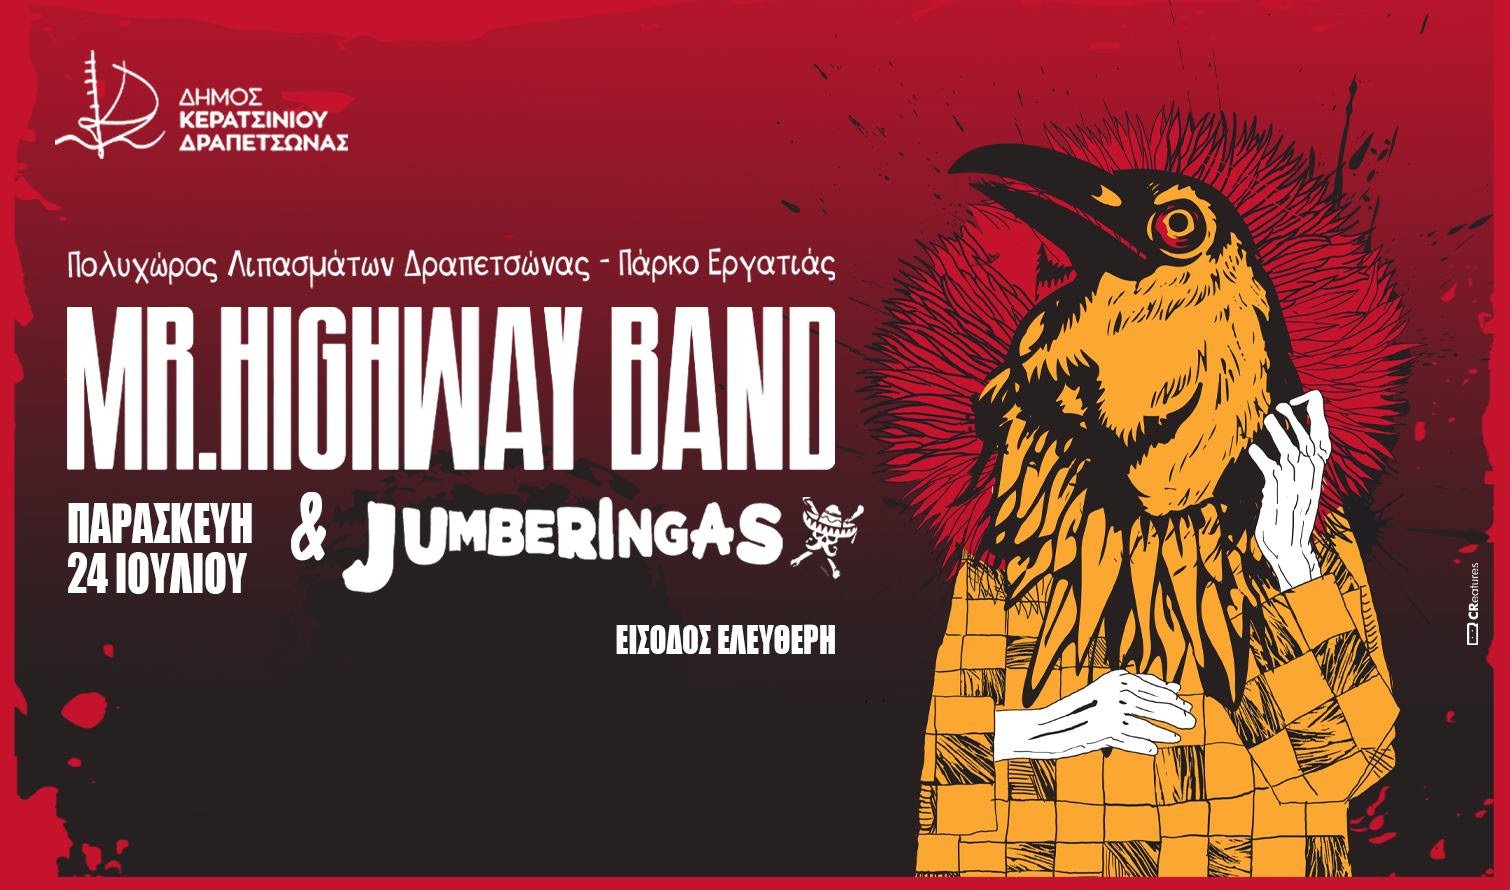 Mr. Highway Band & Jumberingas στα Λιπάσματα, Δραπετσώνα